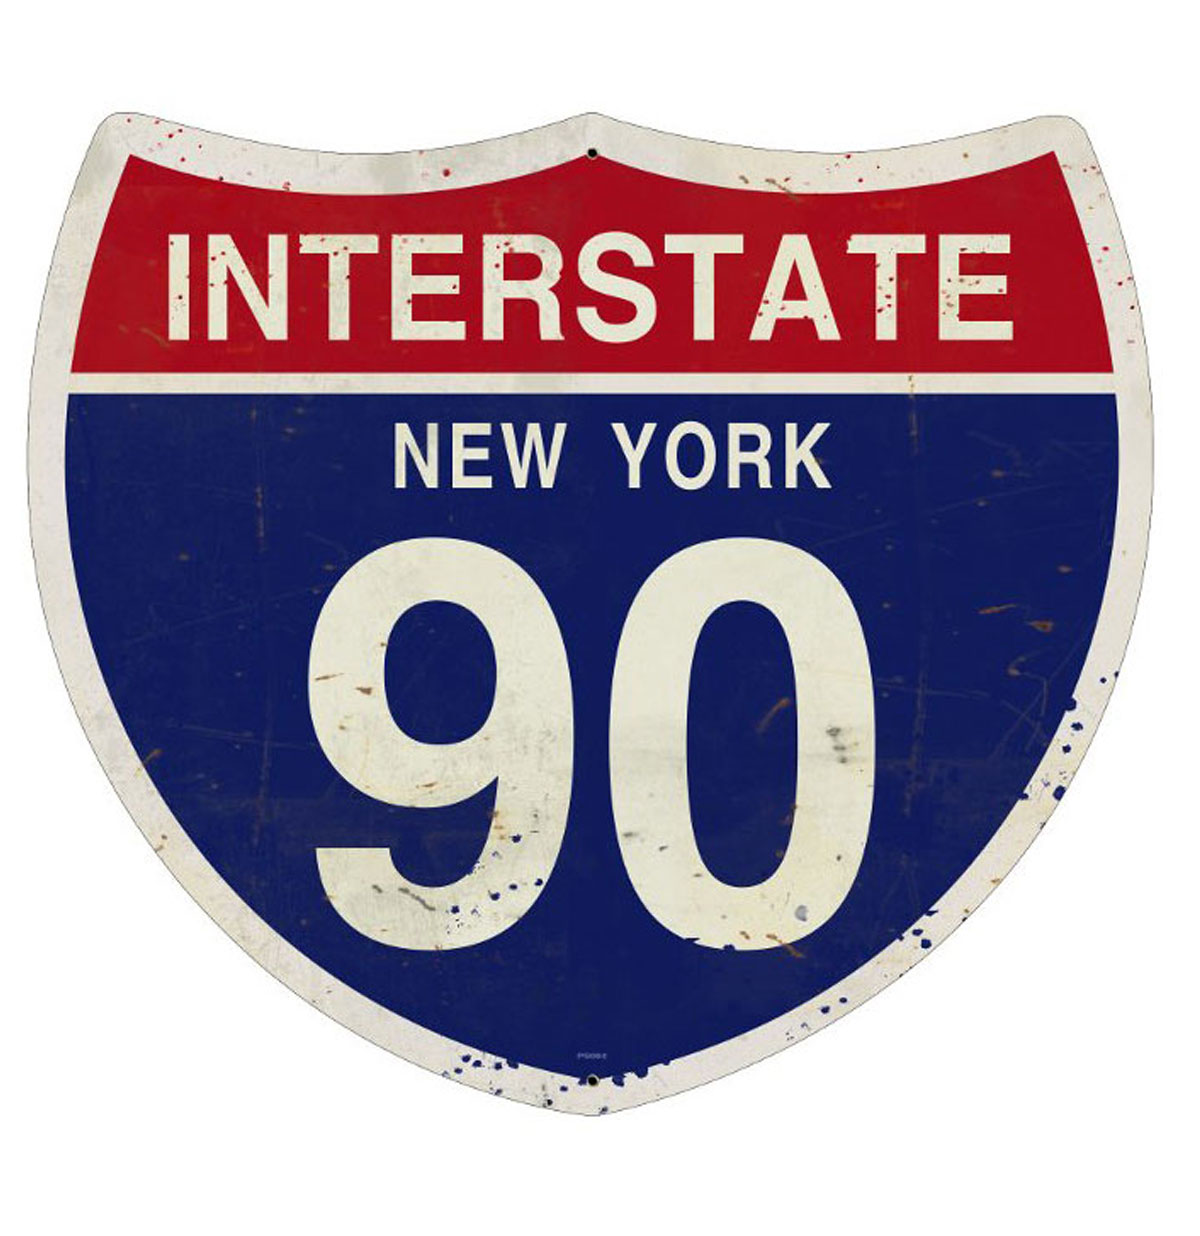 Interstate 90 New York Zwaar Metalen Bord